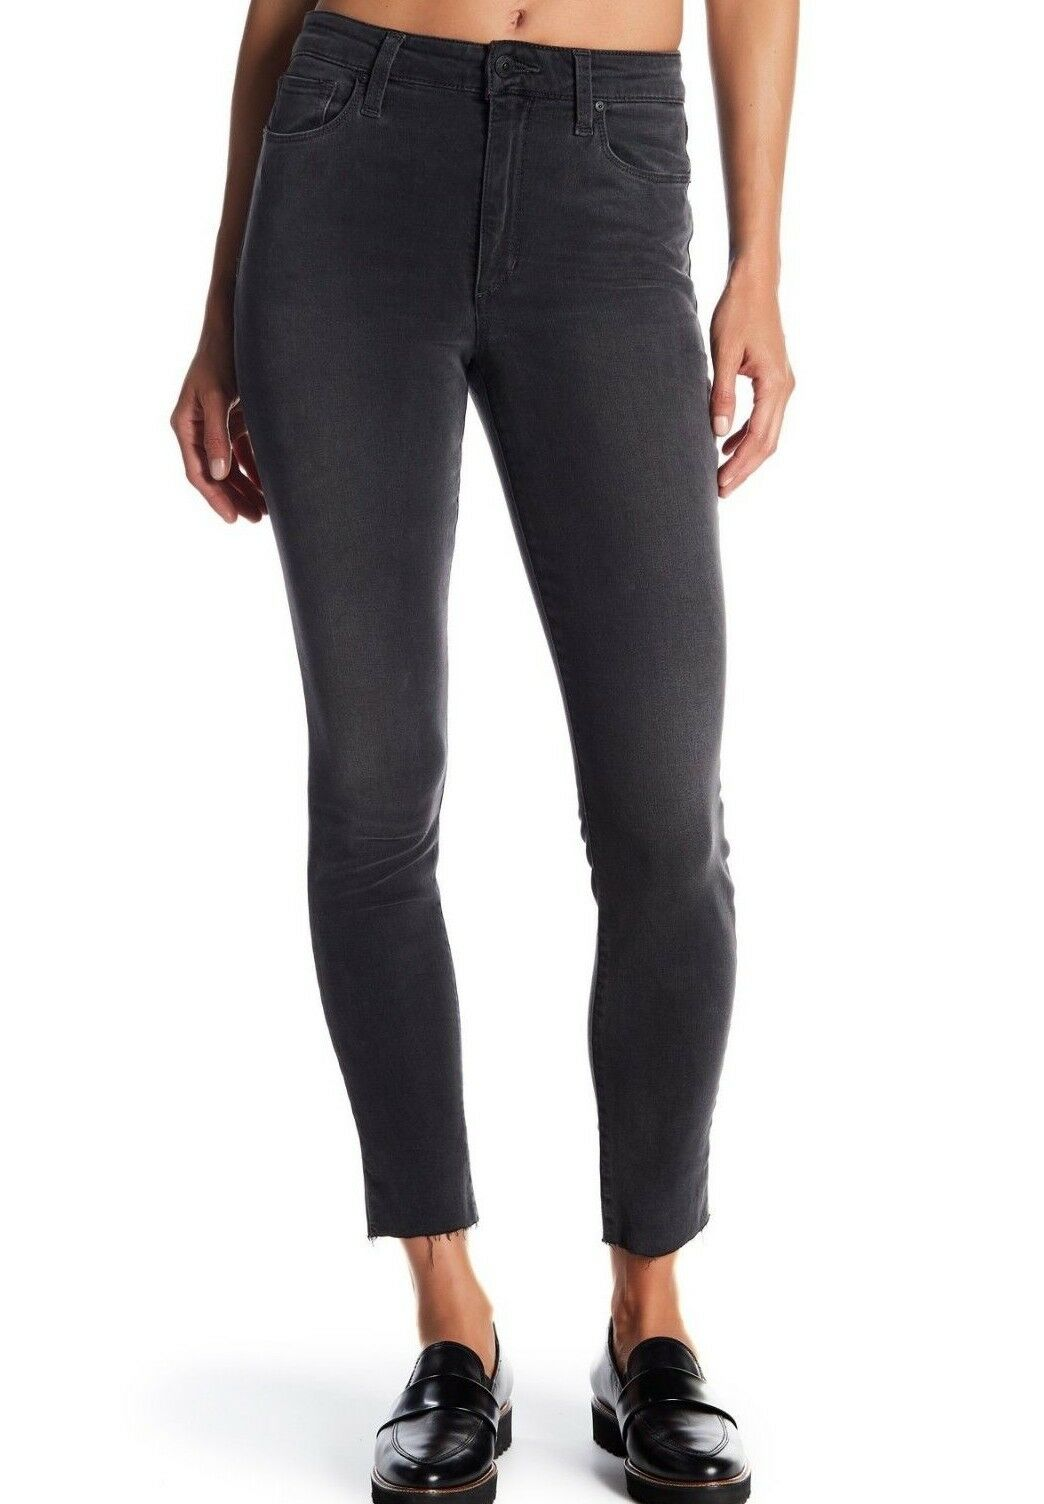 NWT JOE'S Sz29 THE CHARLIE RAW HEM ANKLE HI-RISE STRETCH JEANS LILYANA GREY